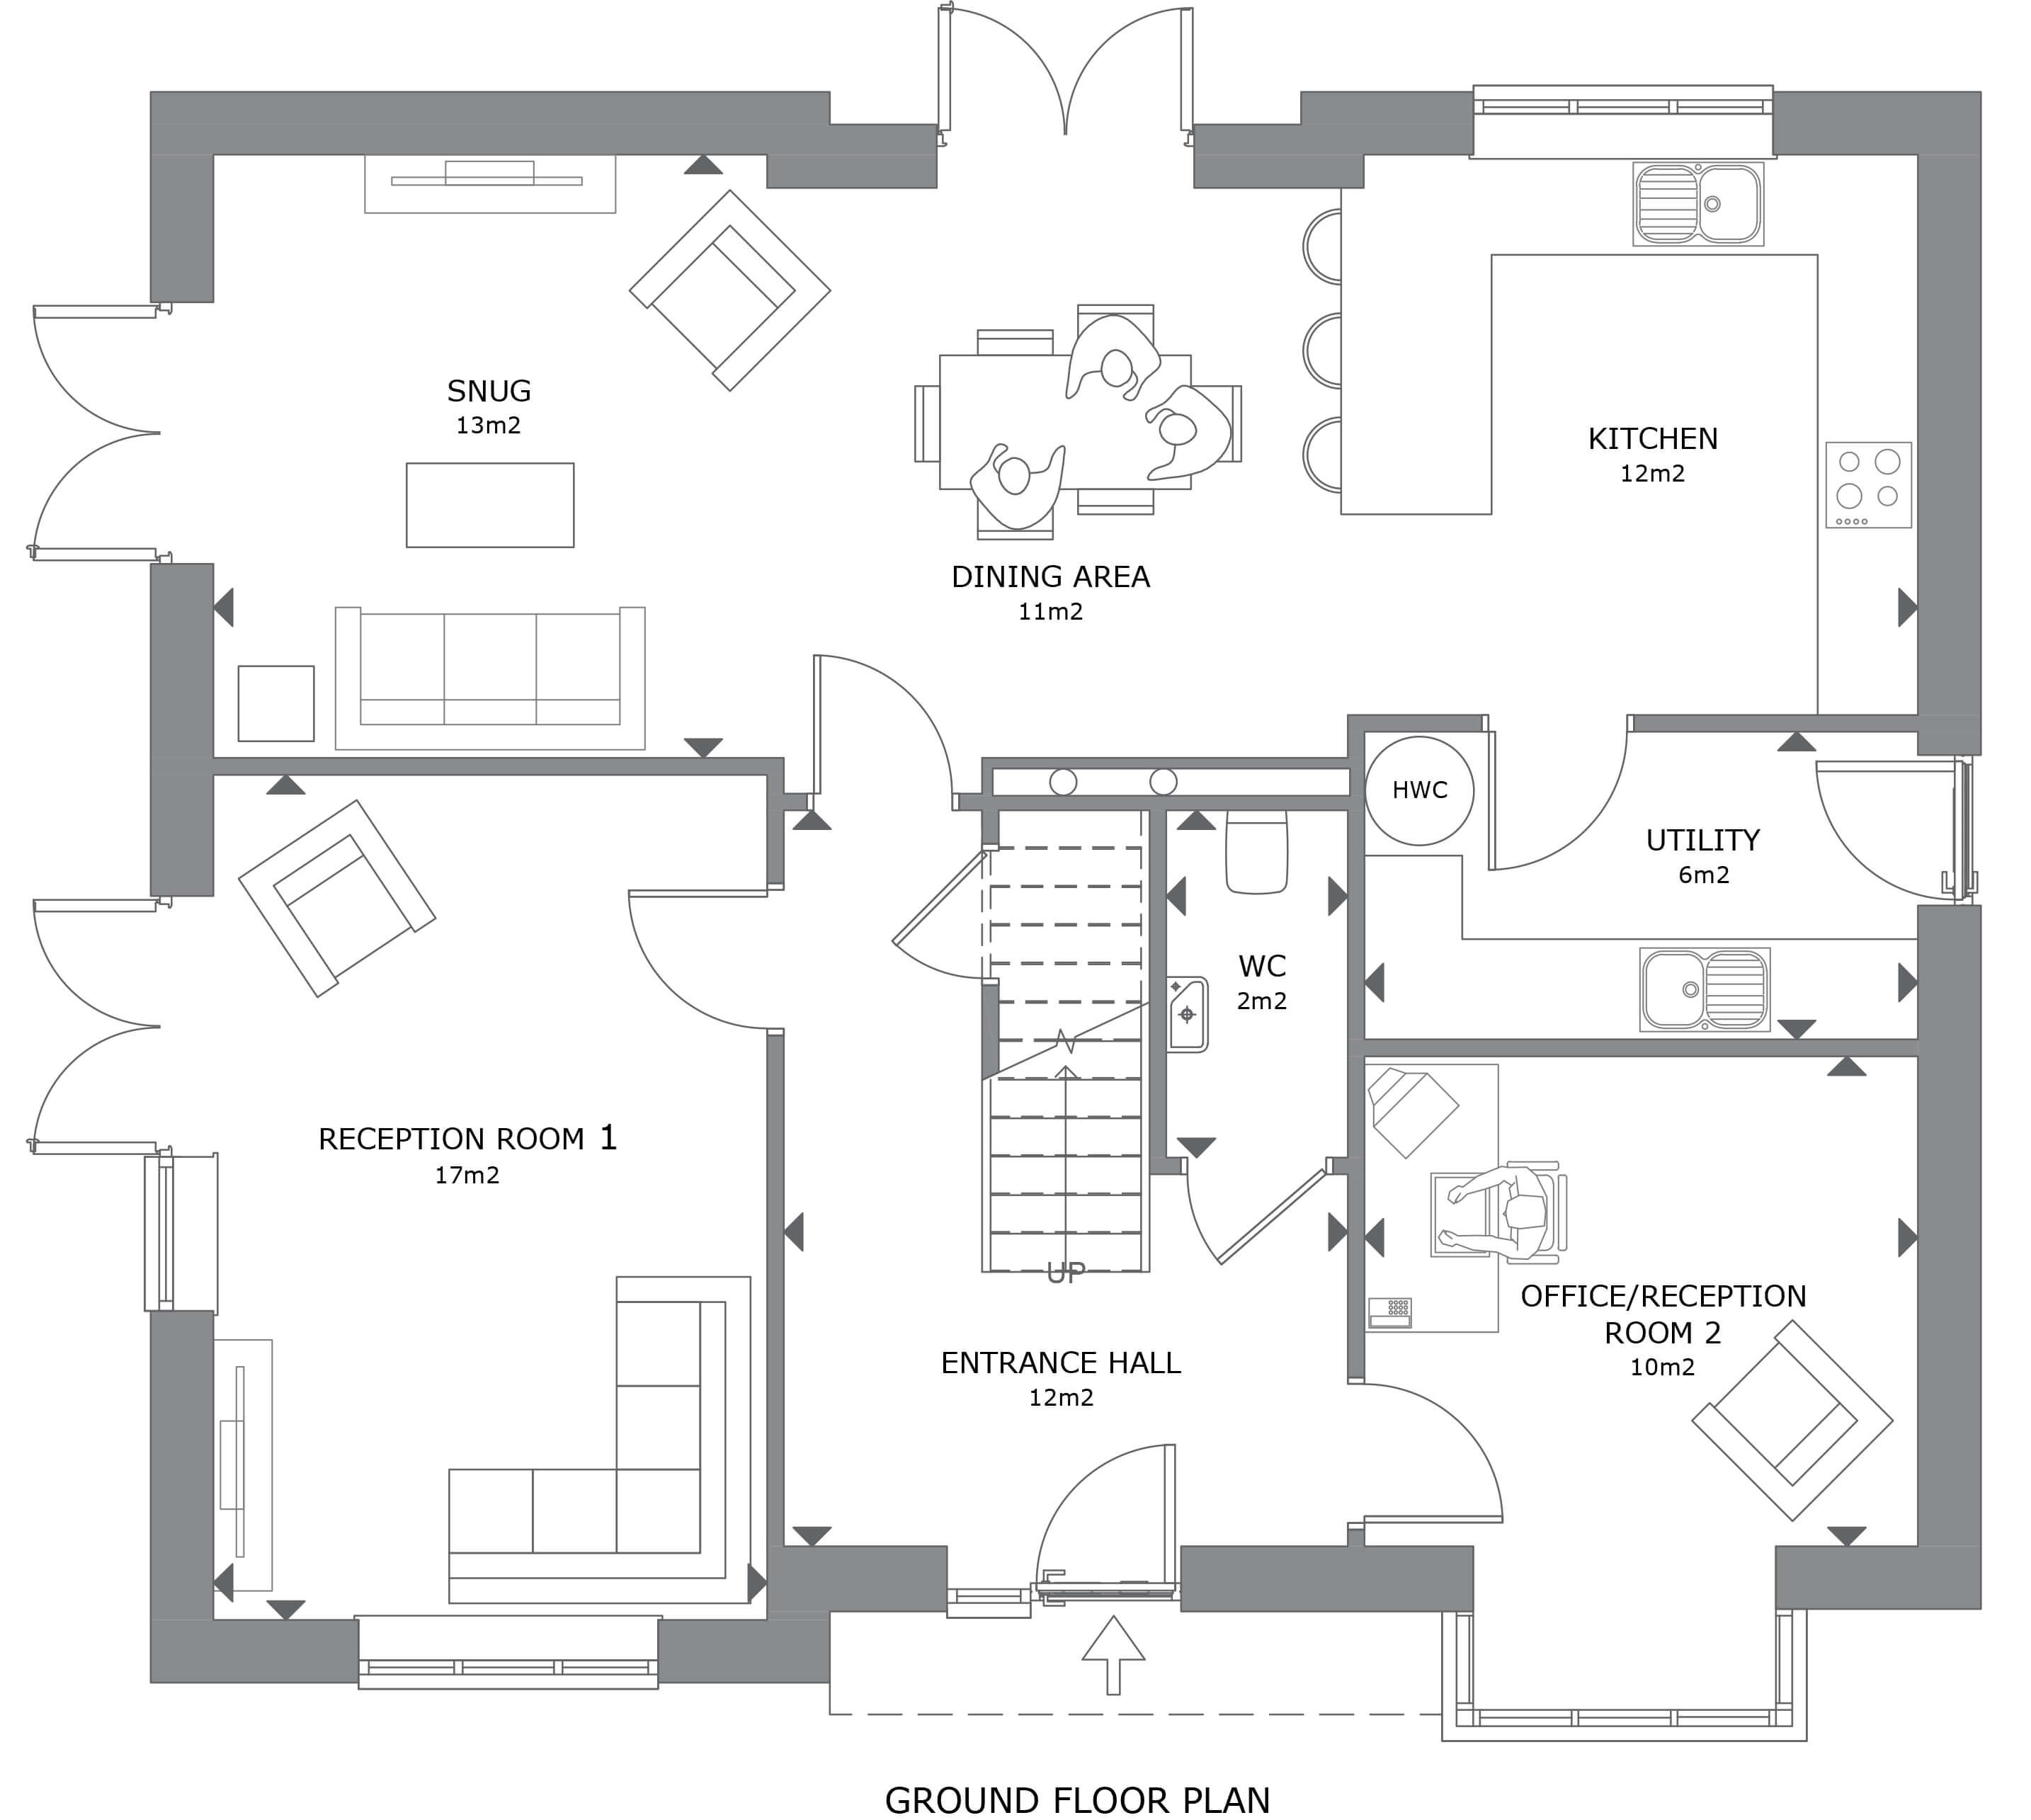 House 33 - 5 Bedroom Detached Home - Legacy Homes